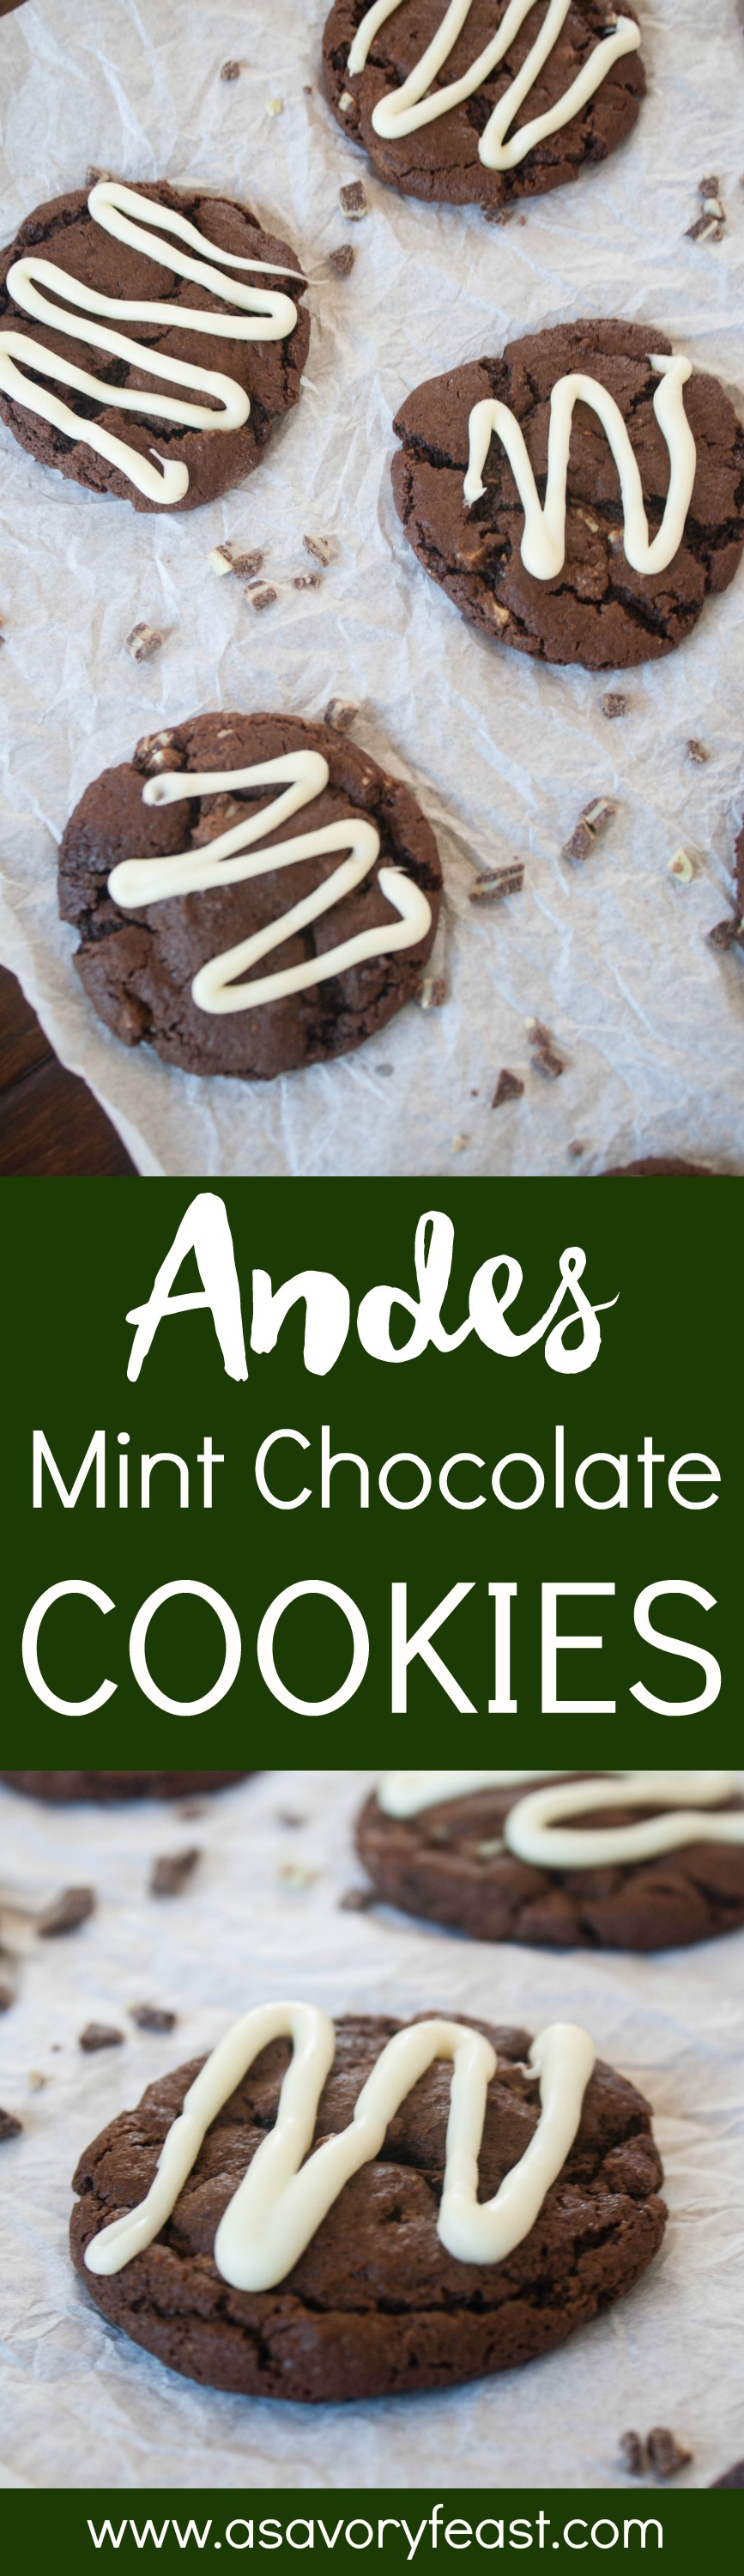 Chocolate and mint are the perfect pair in this cookie recipe! Try these Andes Mint Chocolate Cookies this holiday season. A soft chocolate cookie with pieces of Andes candy inside, topped with a peppermint and white chocolate drizzle. This recipe is easy to double or triple, so it's great for bringing to a Christmas cookie exchange!